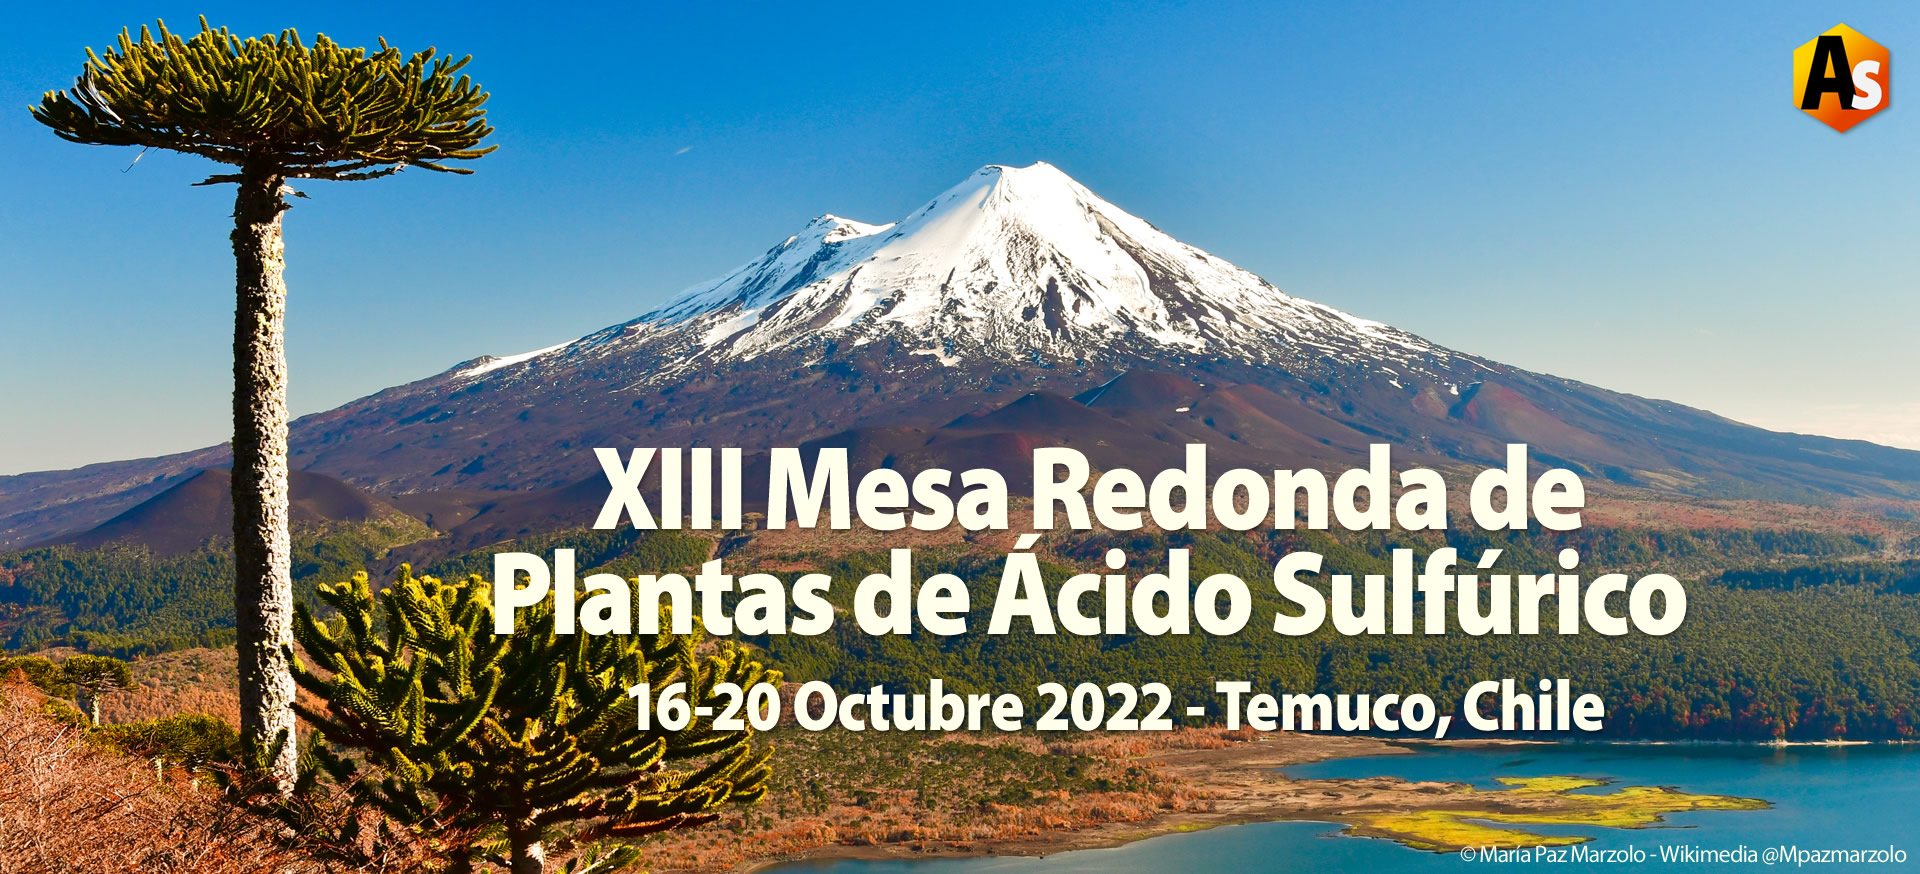 XIII Round Table of Sulphuric Acid Plants • Oct. 2022 • Temuco, Chile